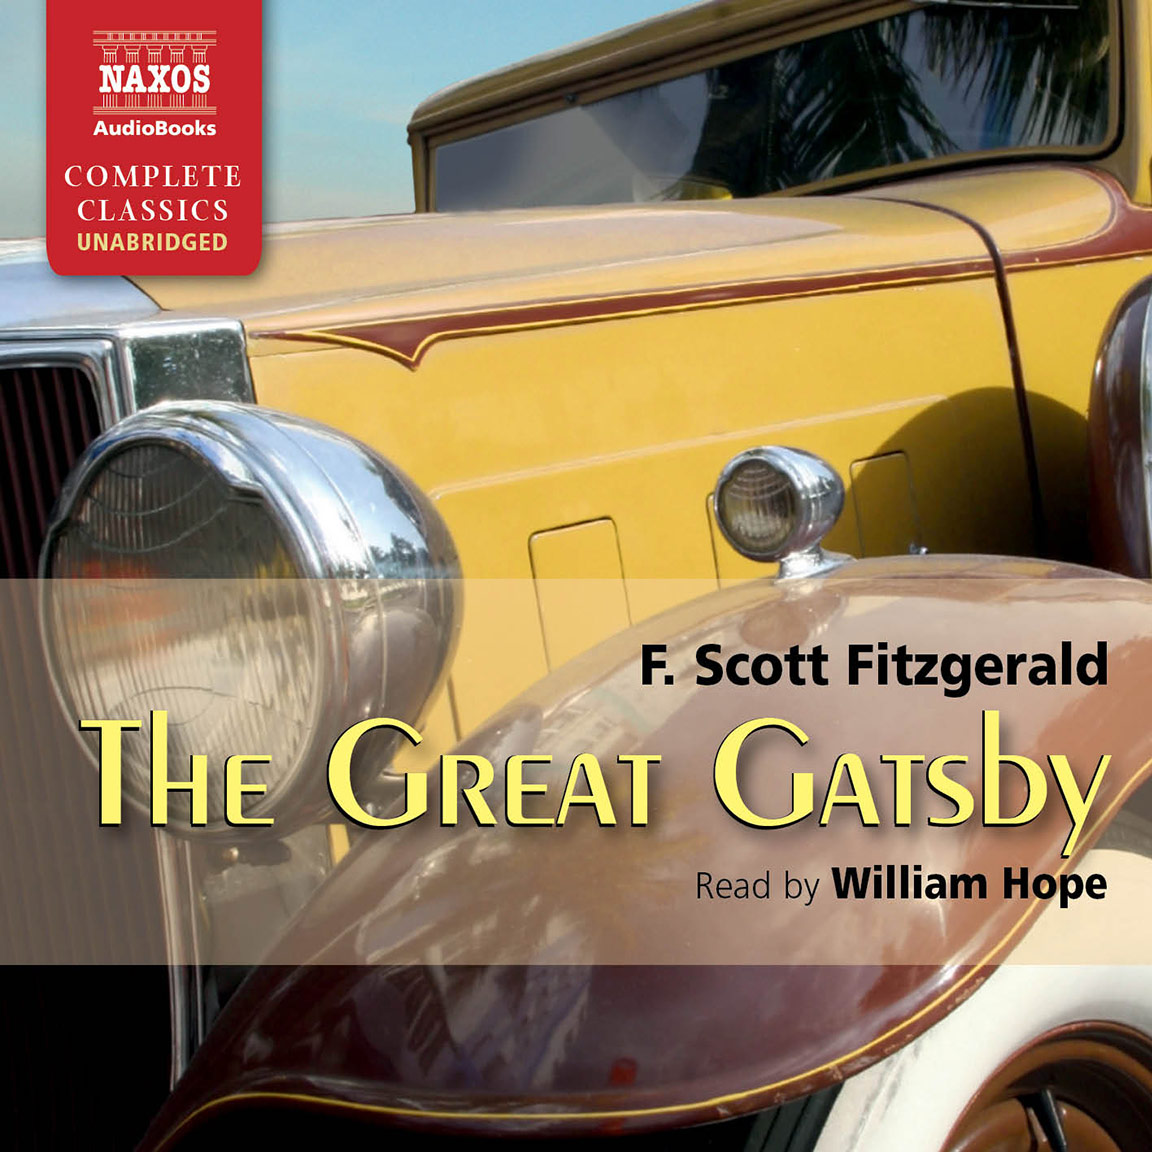 an overview of the white color symbolism in the novel the great gatsby by f scott fitzgerald